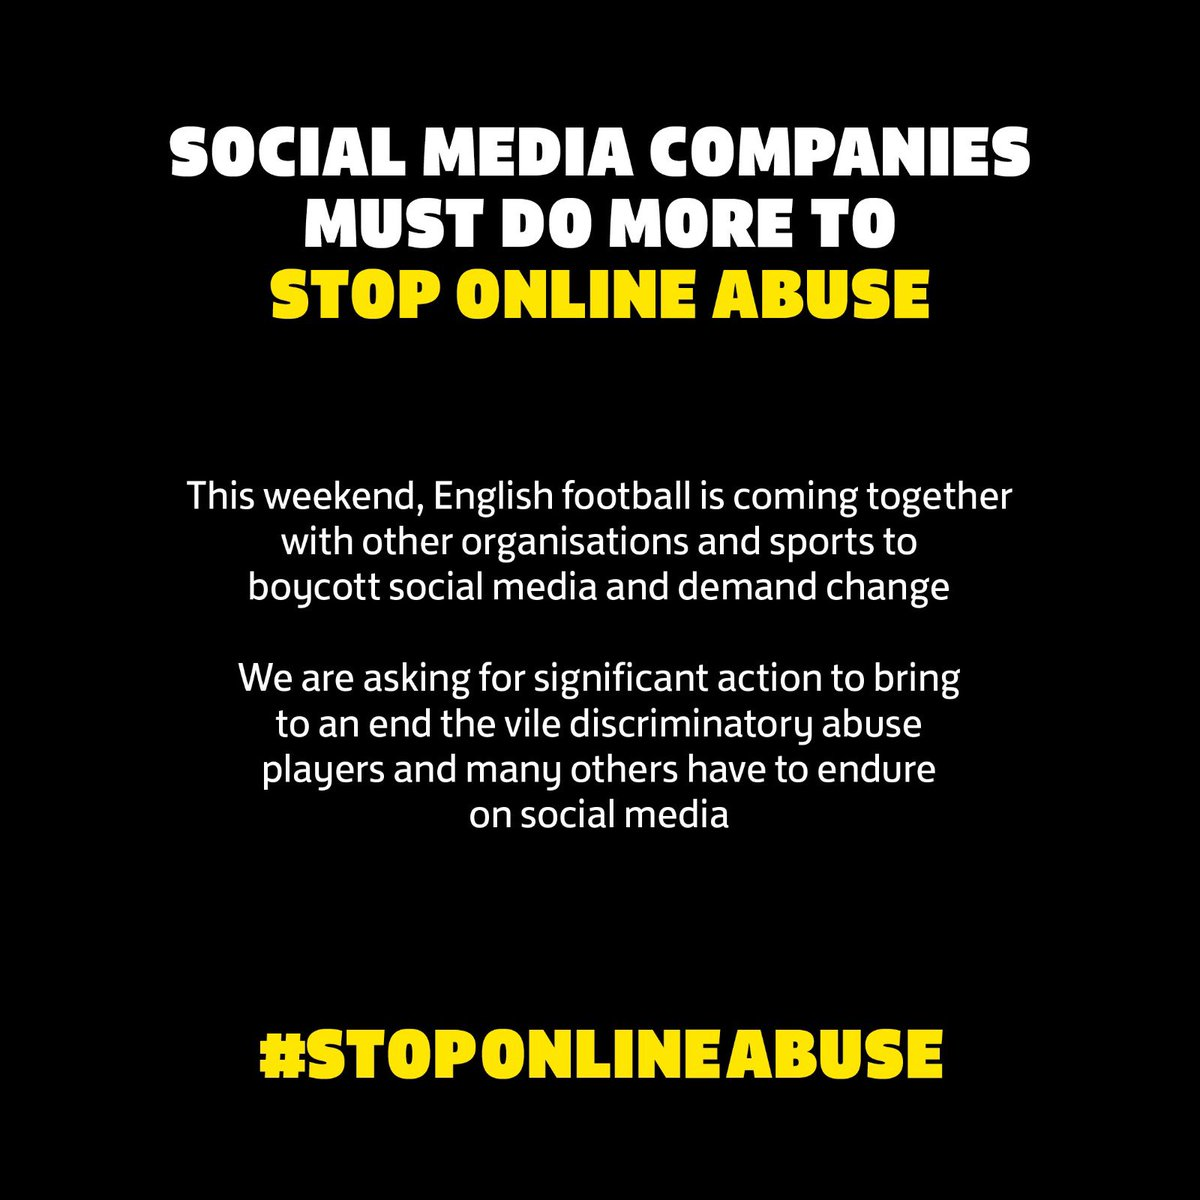 I am boycotting social media until Monday in solidarity with black footballers, and all others who receive racist abuse.   On May Day, unite to oppose all forms of racism. https://t.co/31QGCtUFtq